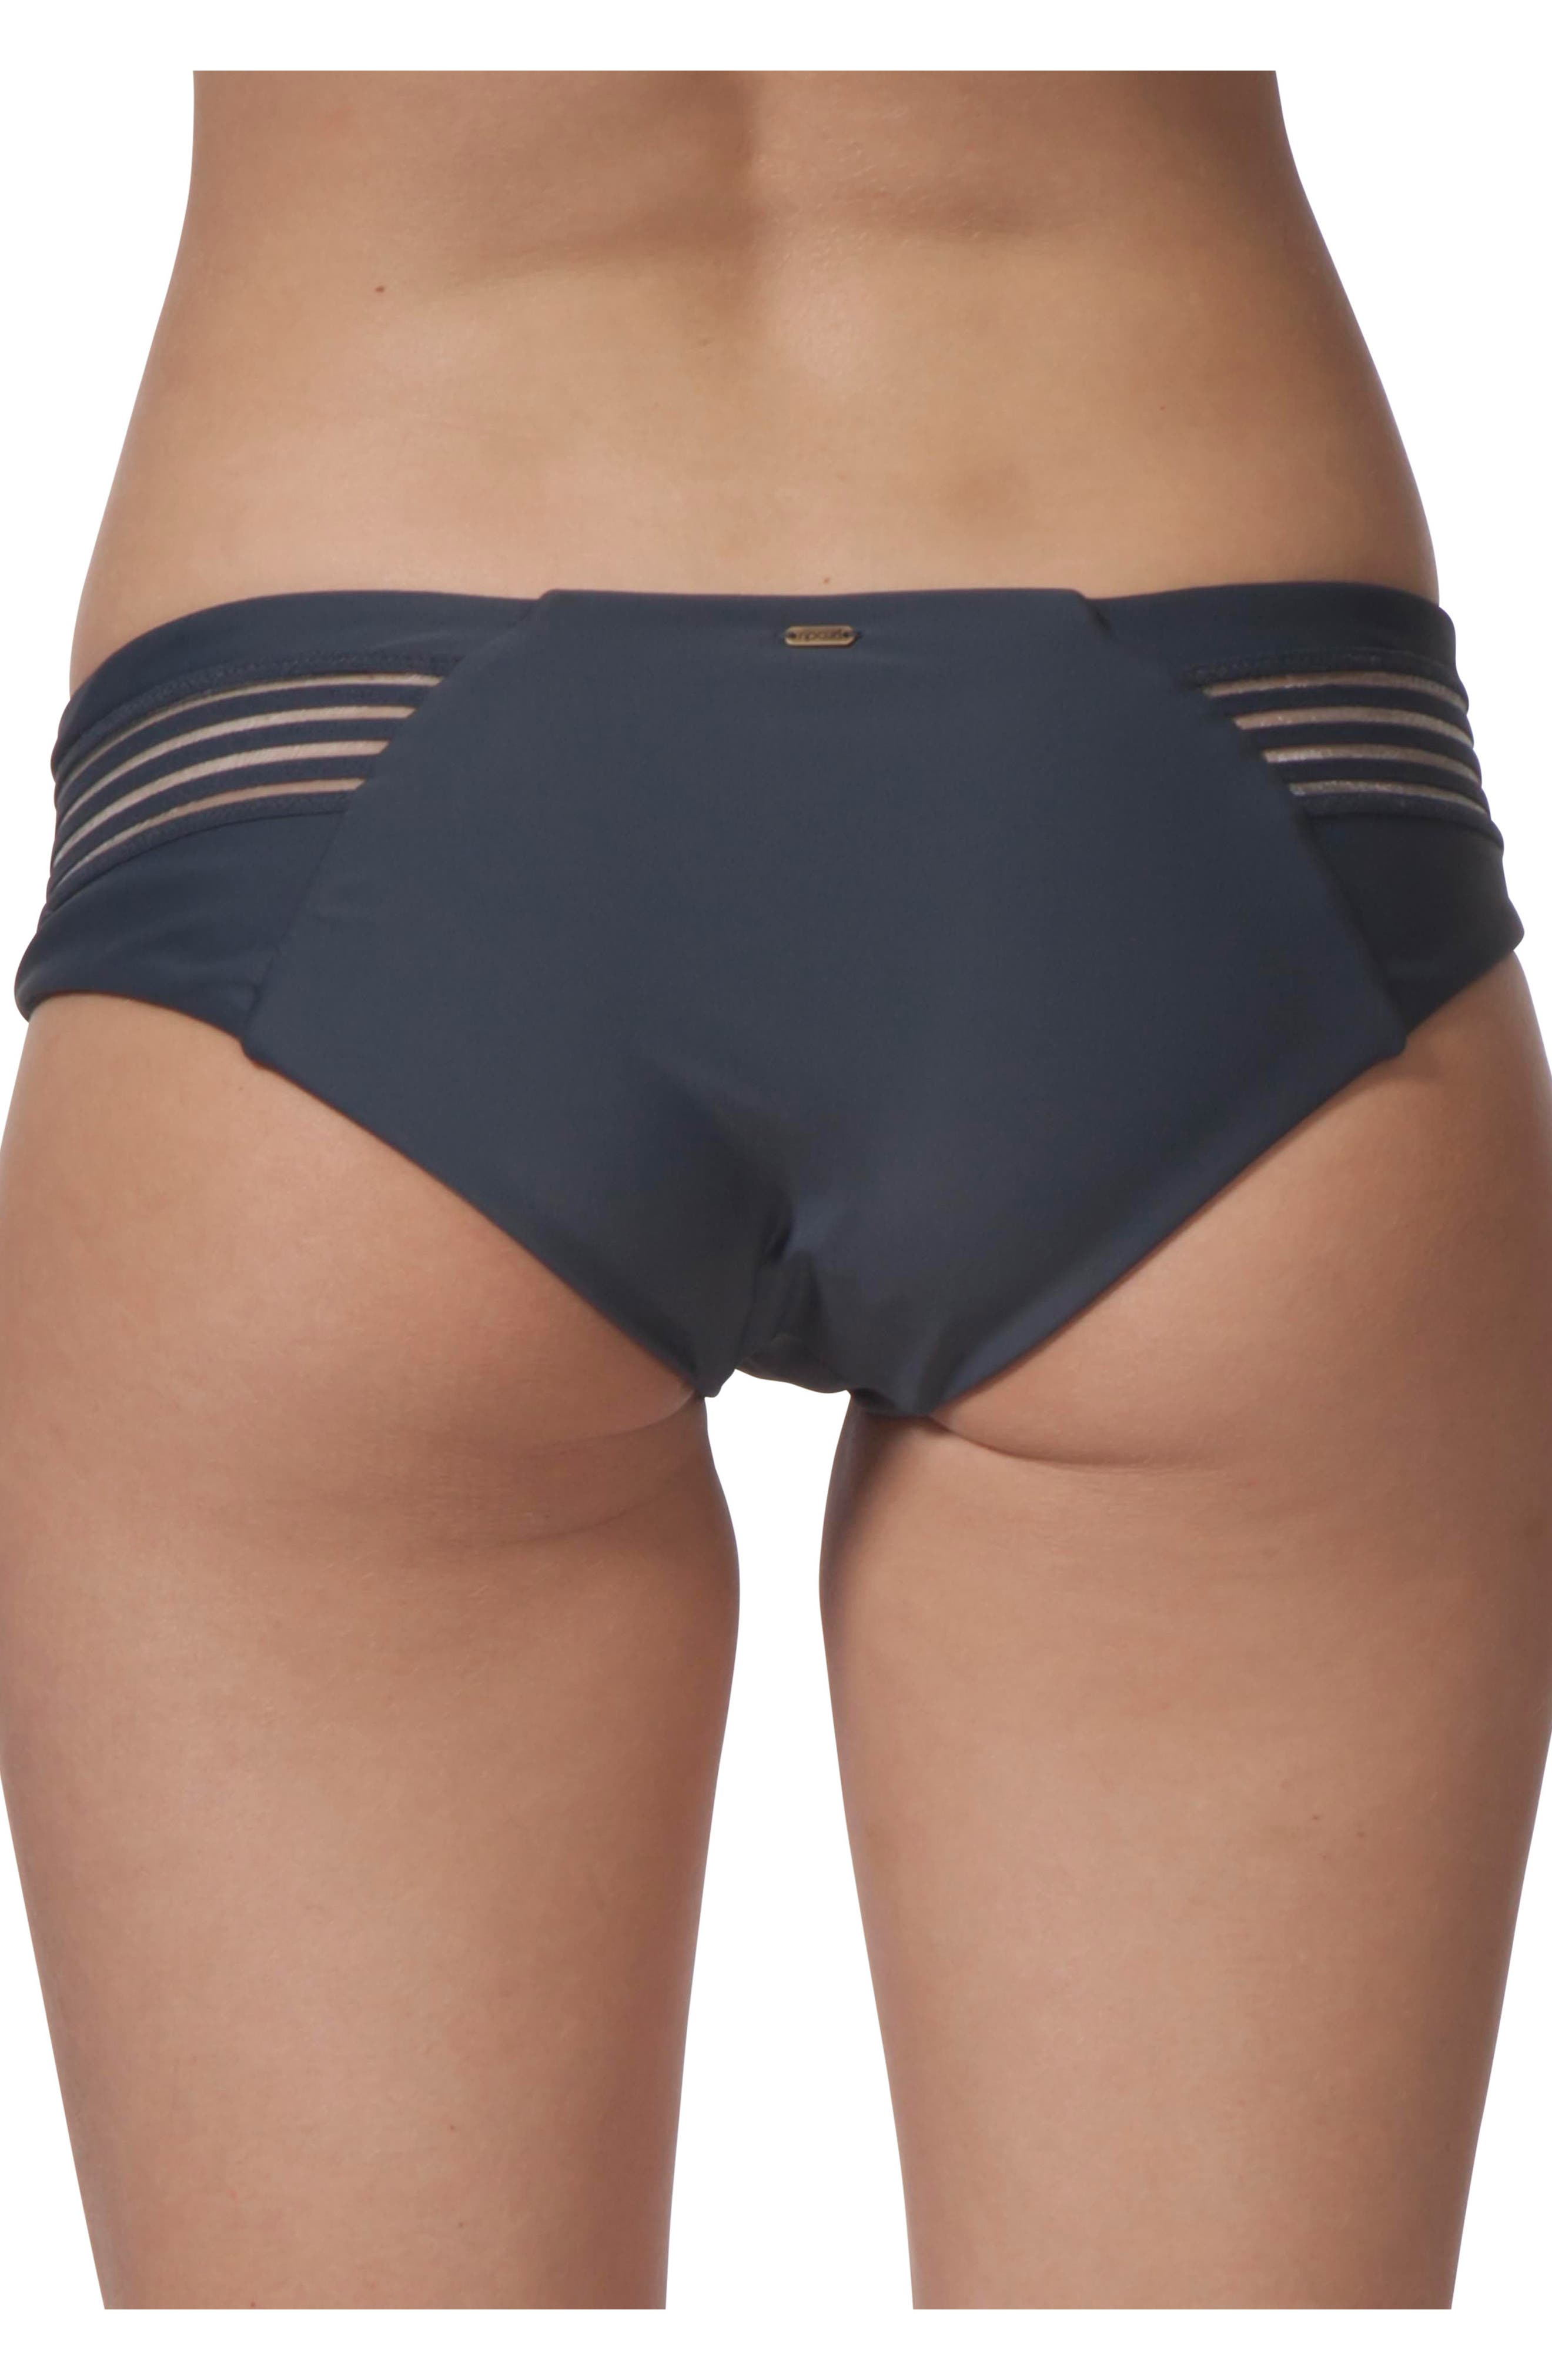 Illusion Hipster Bikini Bottoms,                             Alternate thumbnail 2, color,